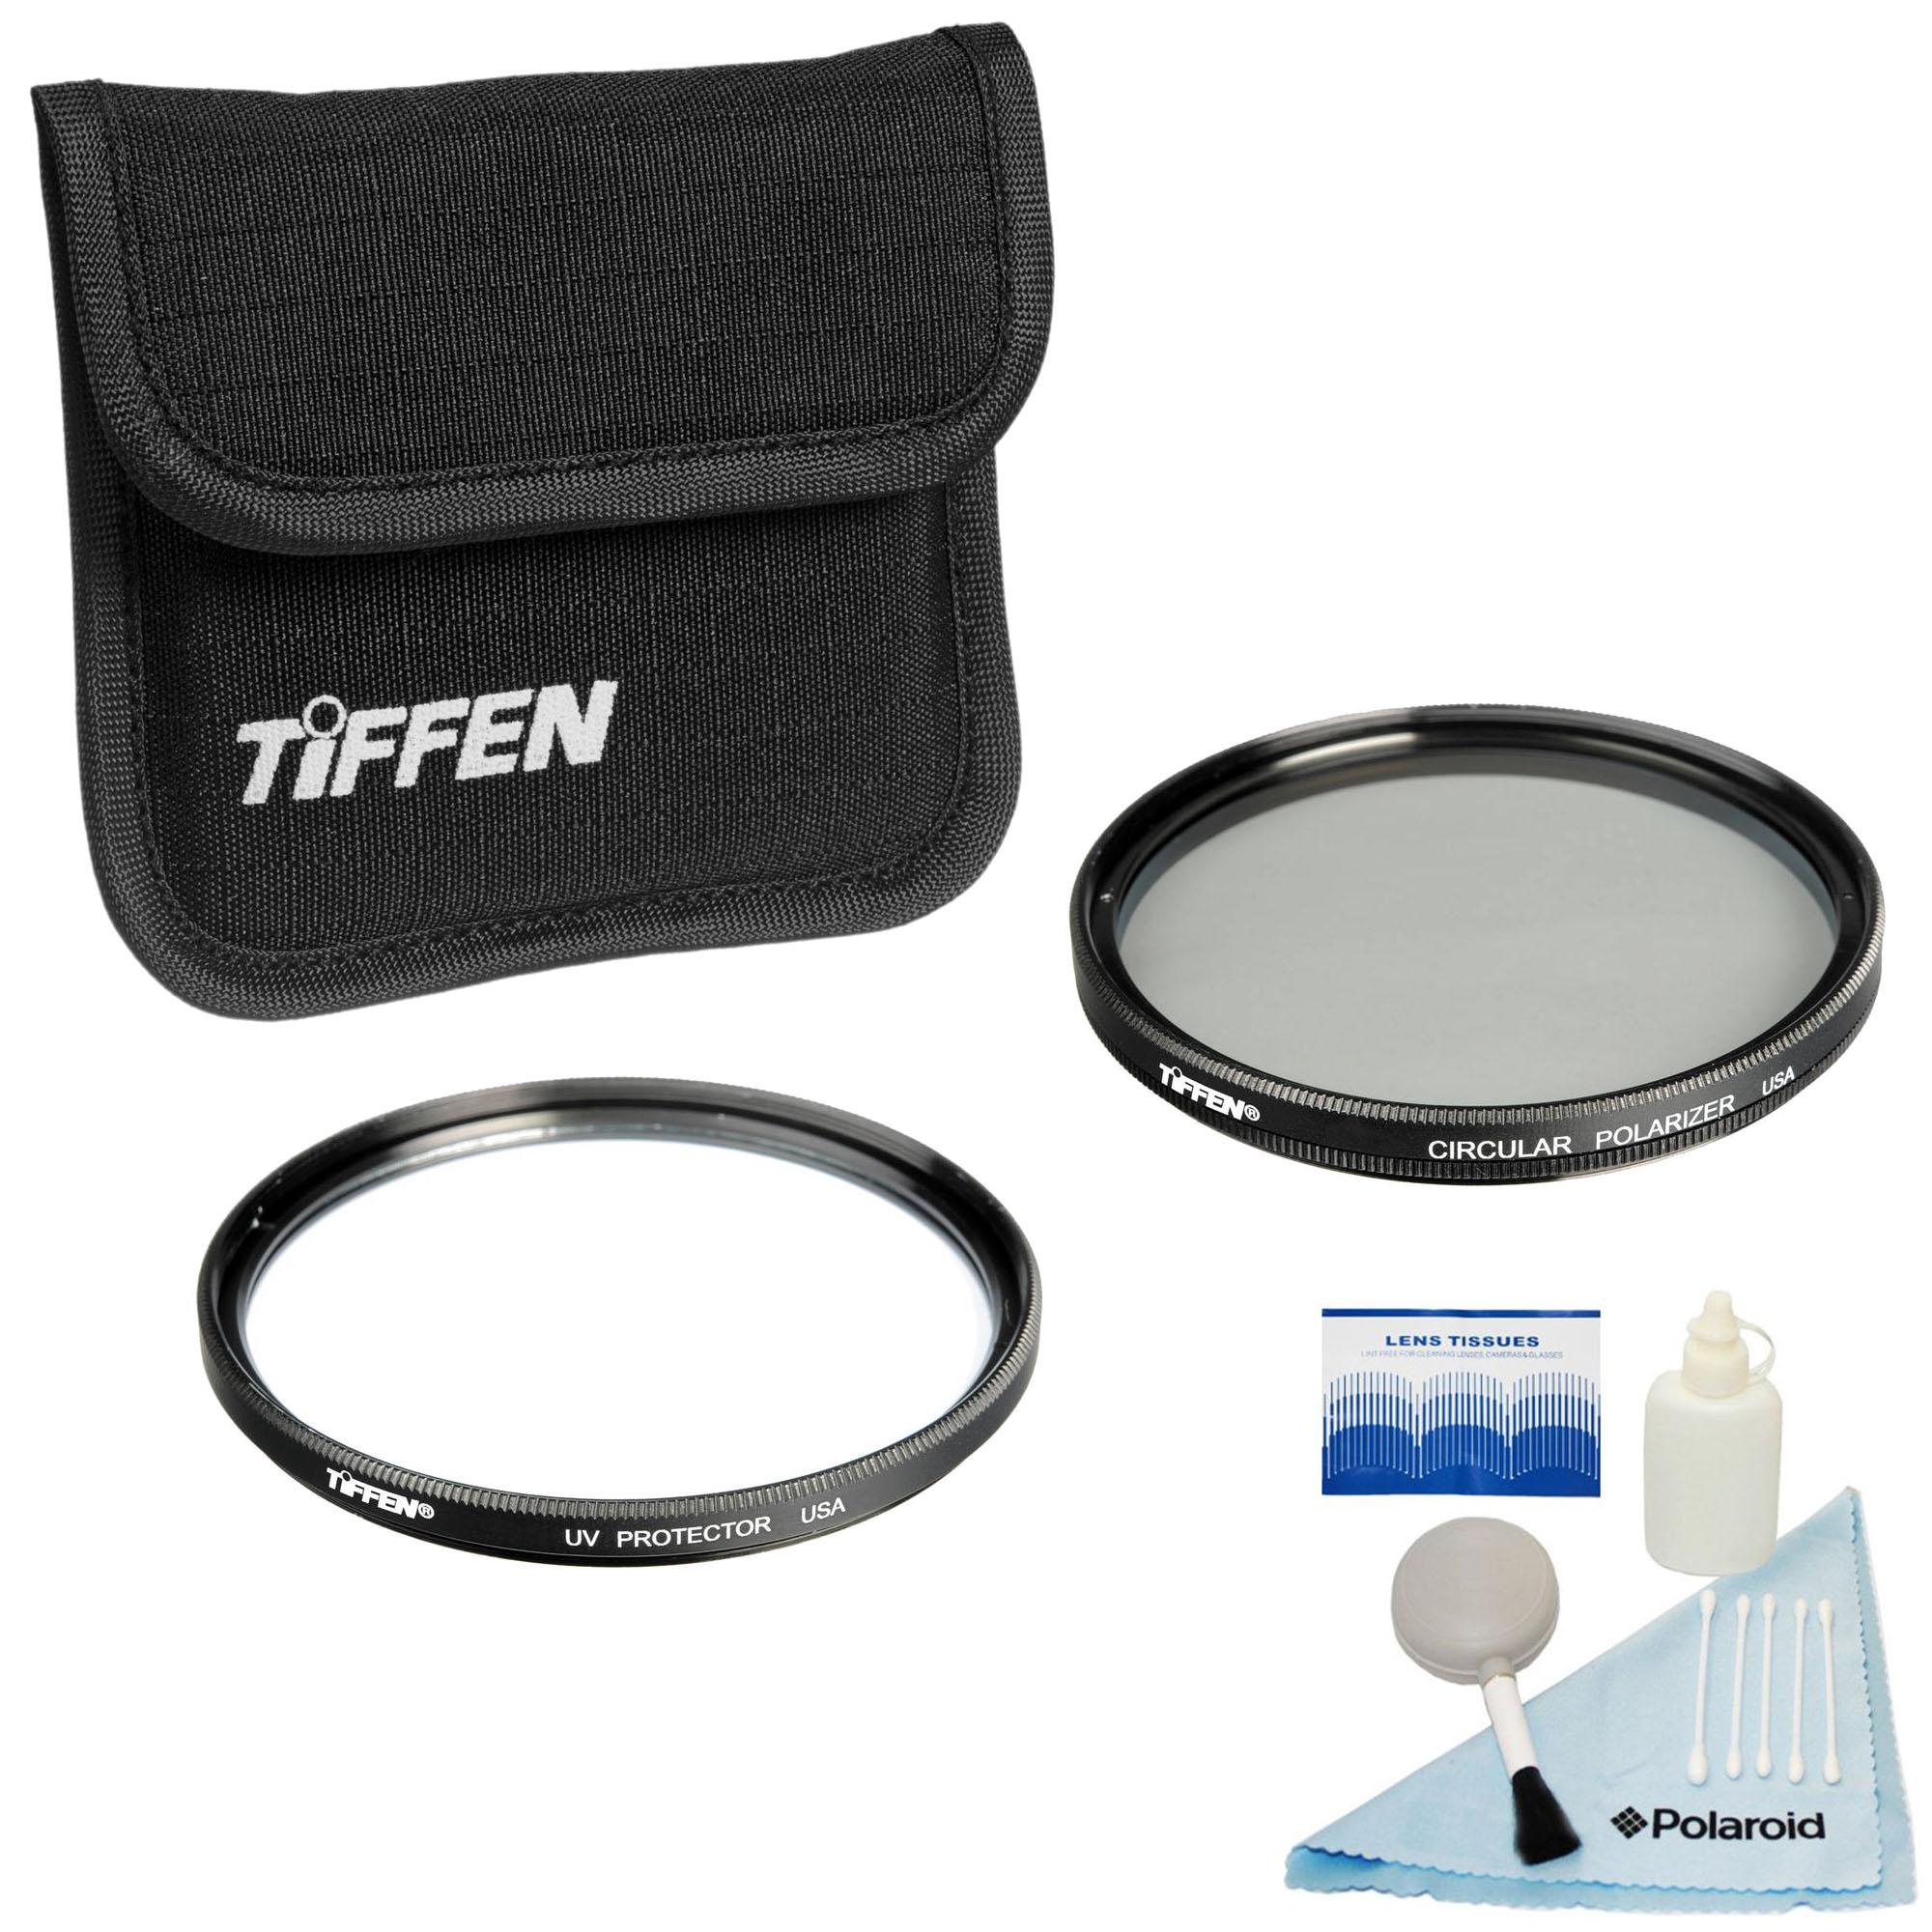 Sony and All Auto-Focus SLR Cameras UV Protection and Circular Polarizing Filter for Camera Tiffen 77mm Photo Twin Pack Free 5 Piece Camera Cleaning Kit Nikon Work with Canon